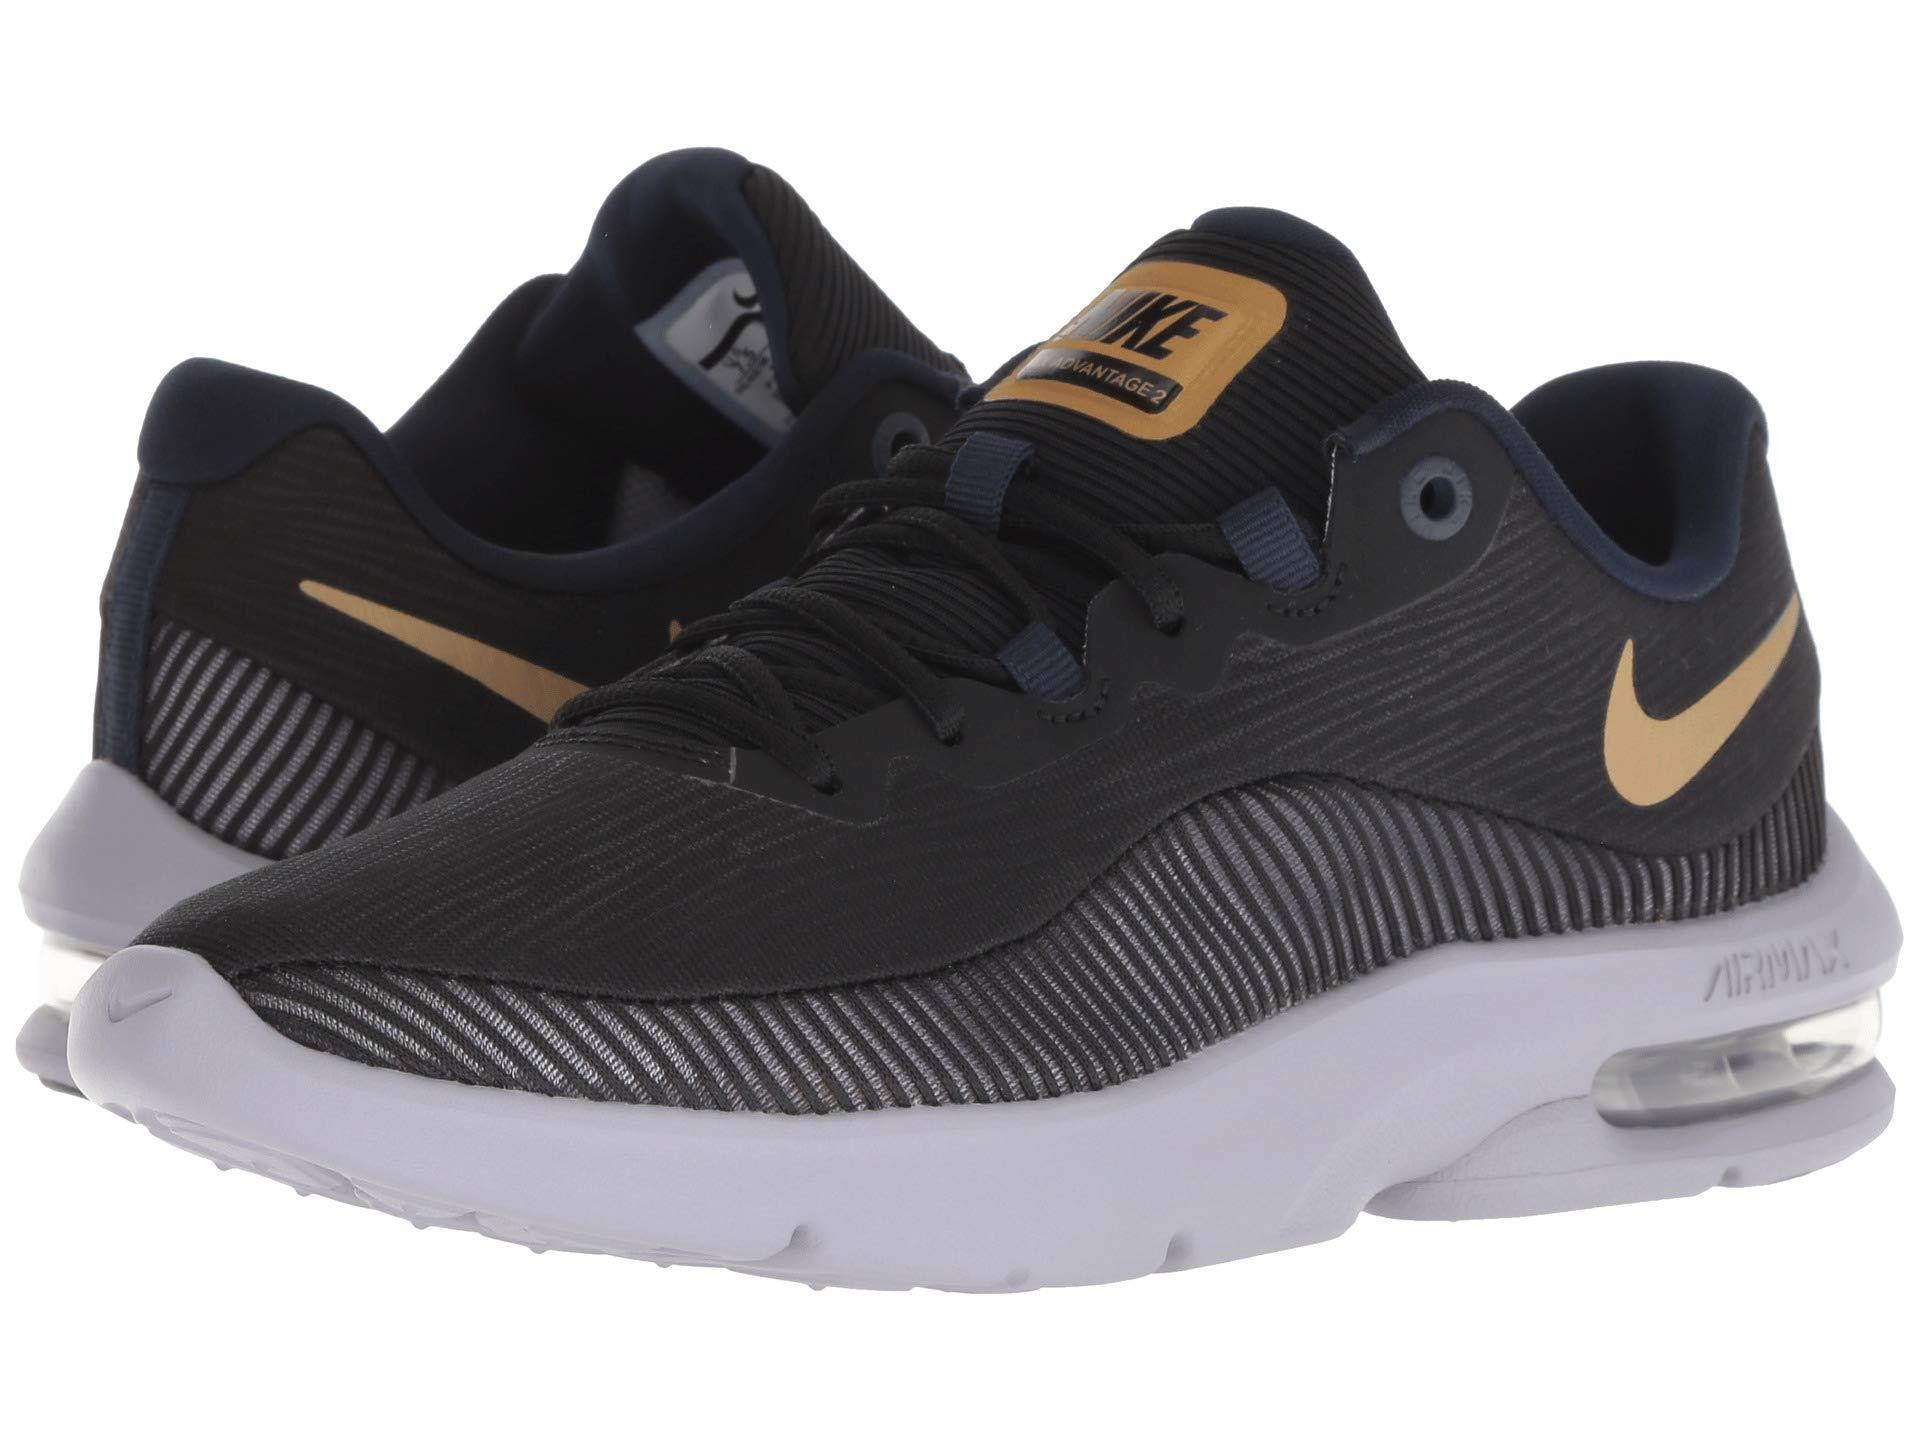 096babcbca Nike Air Max Advantage 2 (white/black) Women's Running Shoes in ...